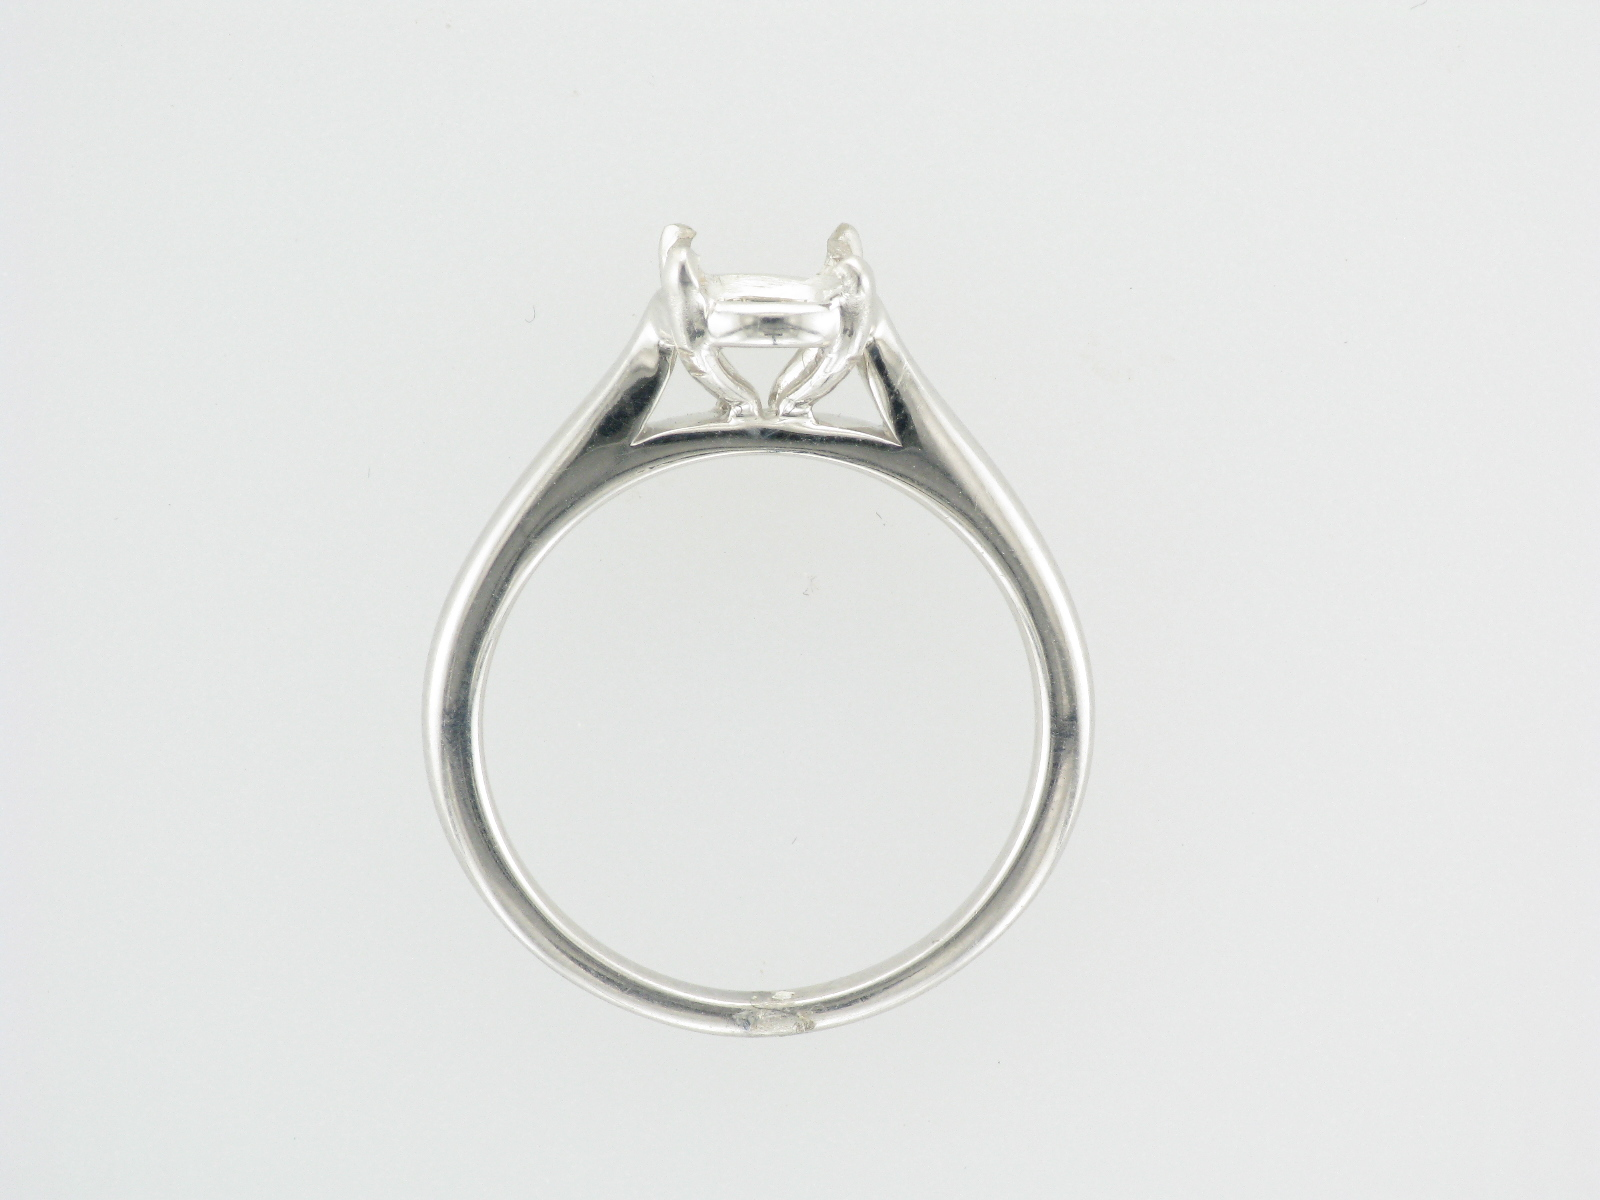 18K White Gold Four Prong Setting